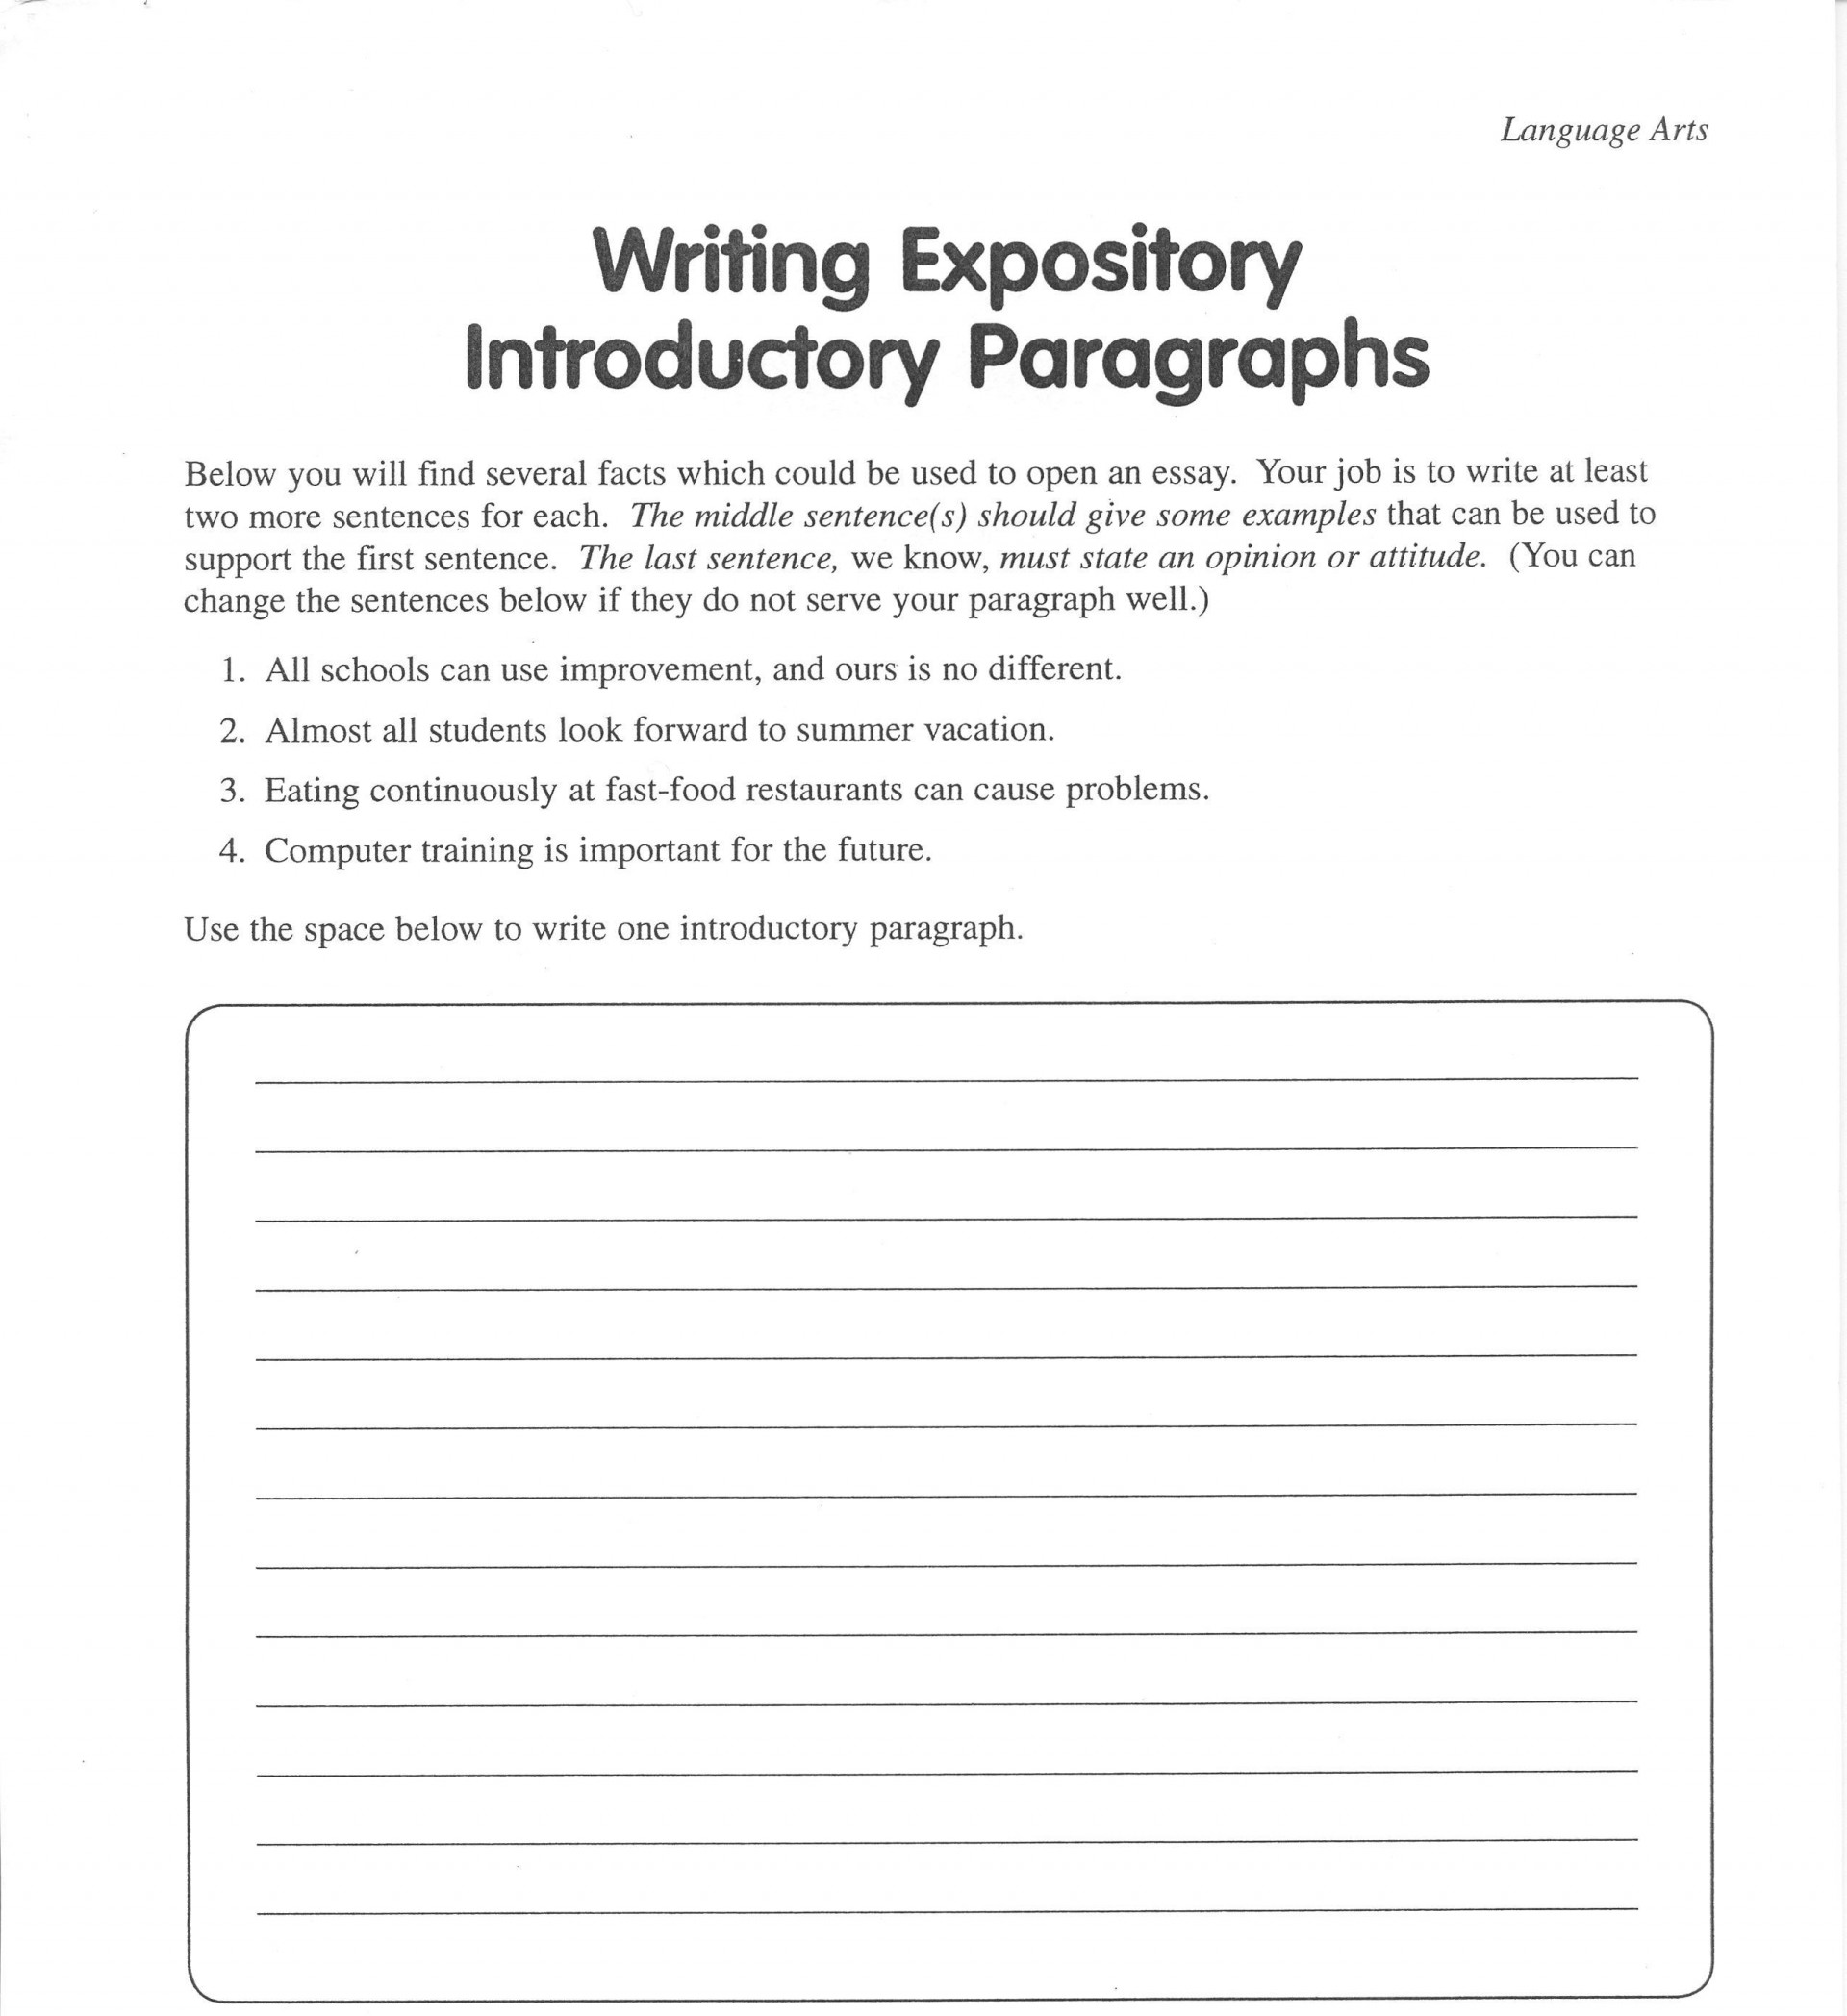 016 Expository Essays High School Writing20expository20introductory20paragraphs Staggering Essay Examples Theme 1920